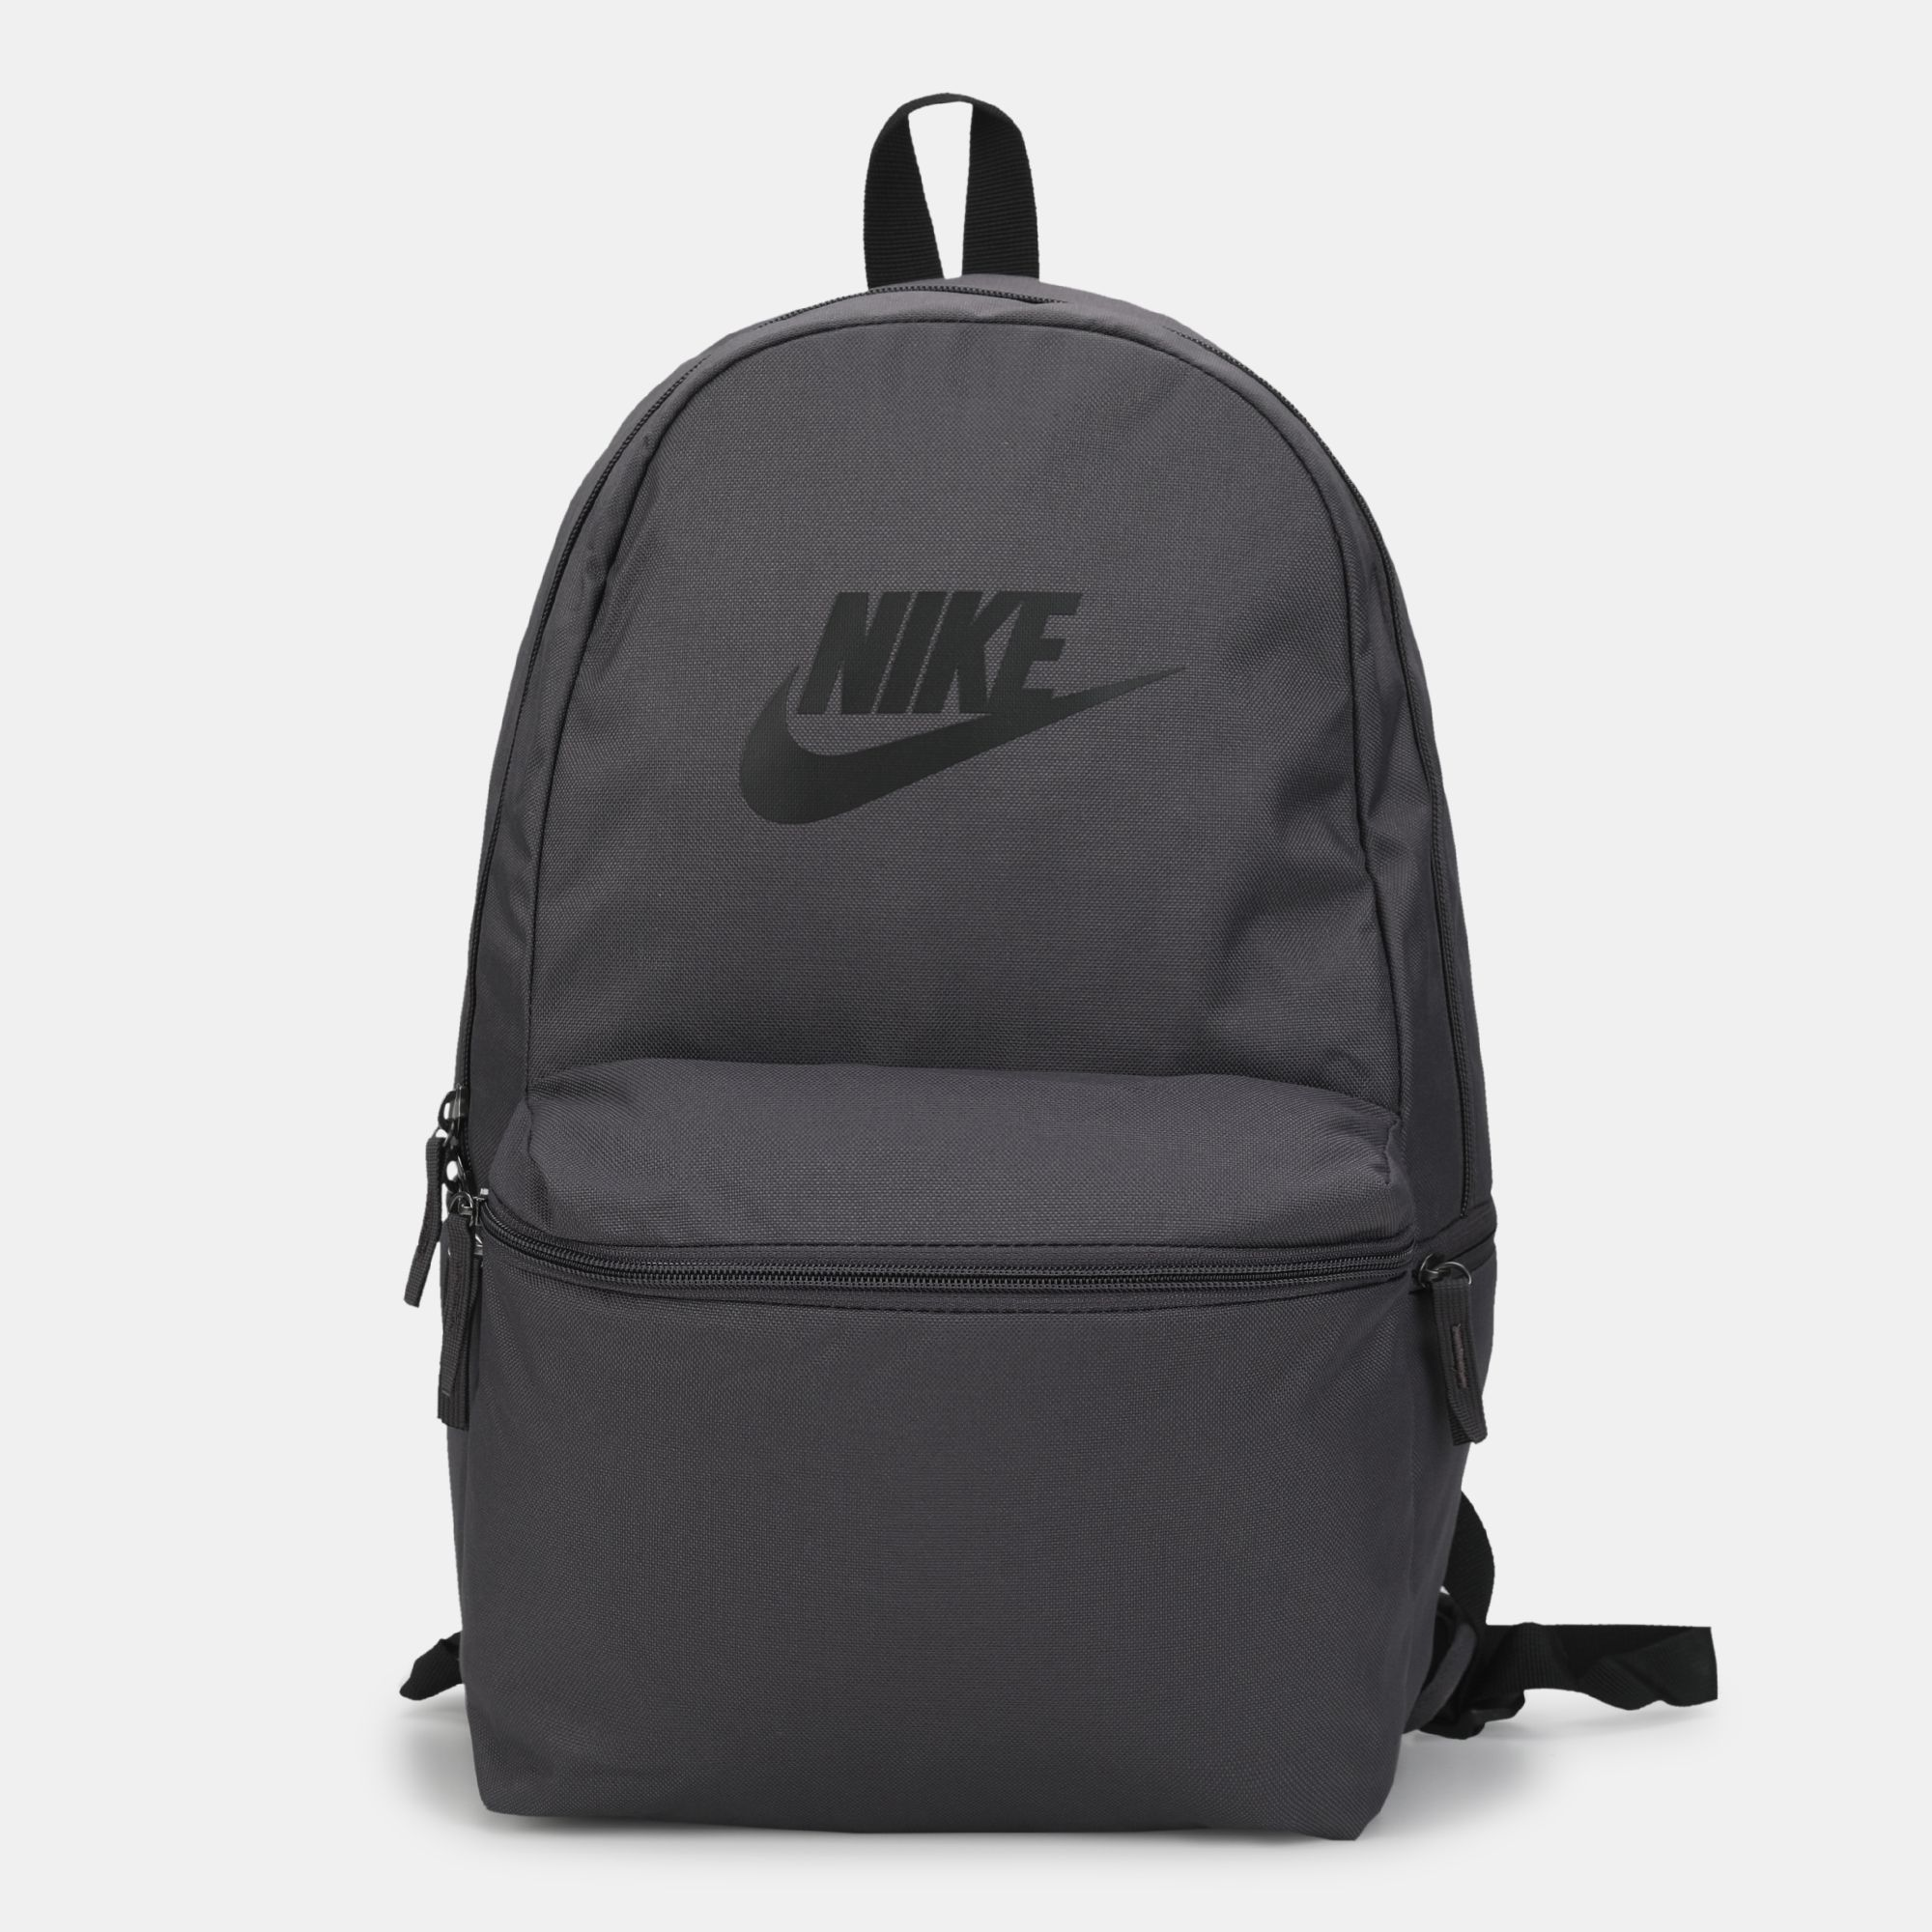 a2d7d70e7364 Black Nike Backpack With Laptop Compartment- Fenix Toulouse Handball